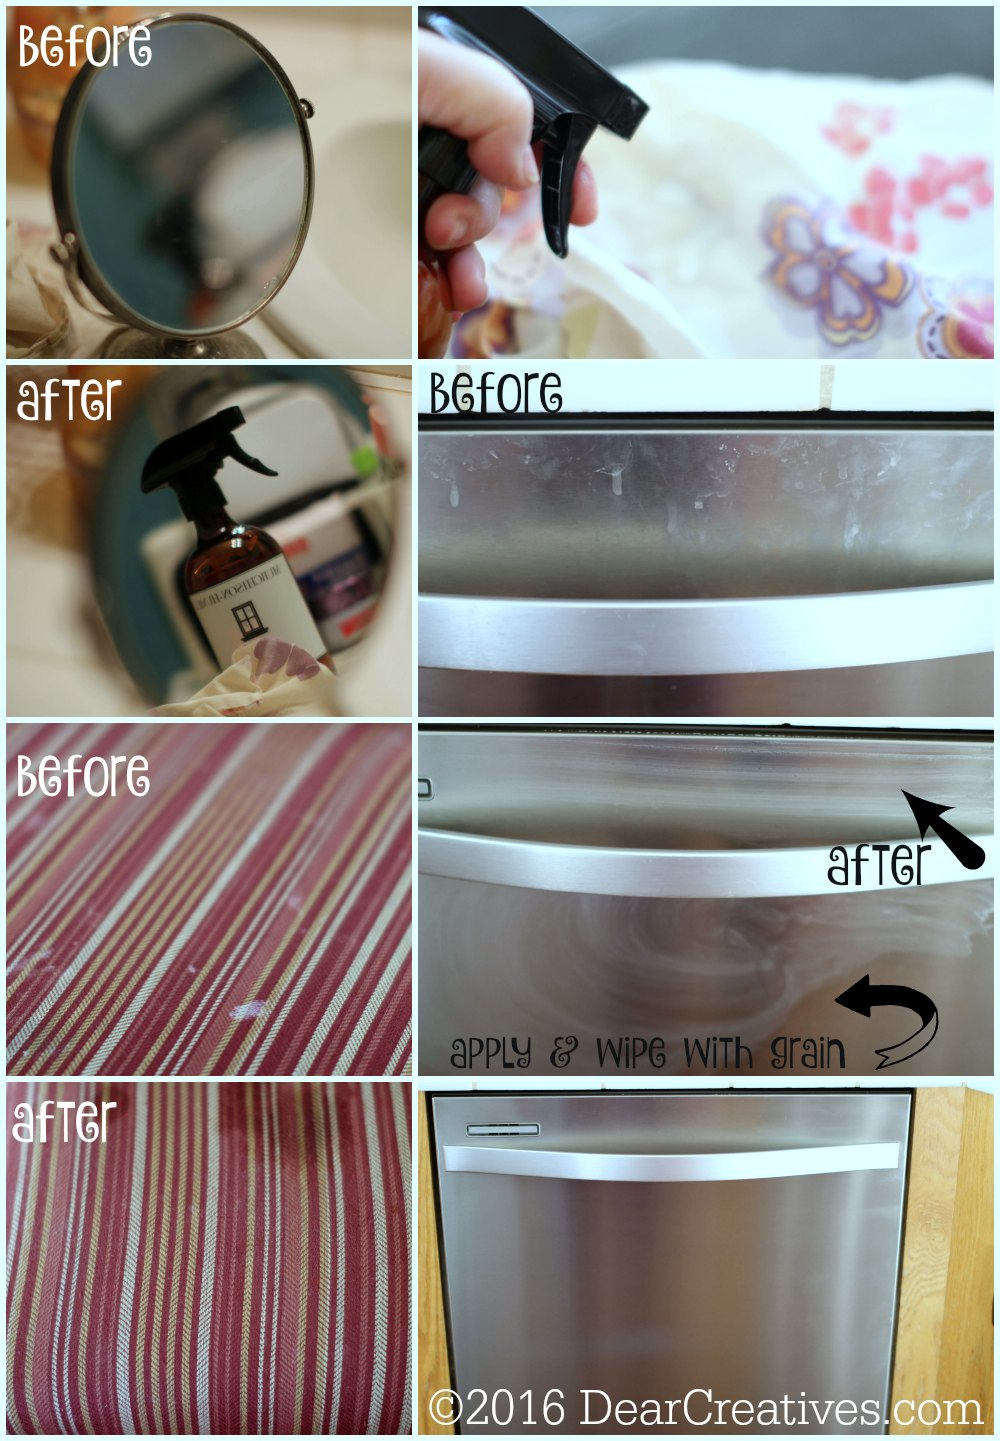 Cleaning Products | Murchison-Hume Review before and after with organic cleaning products